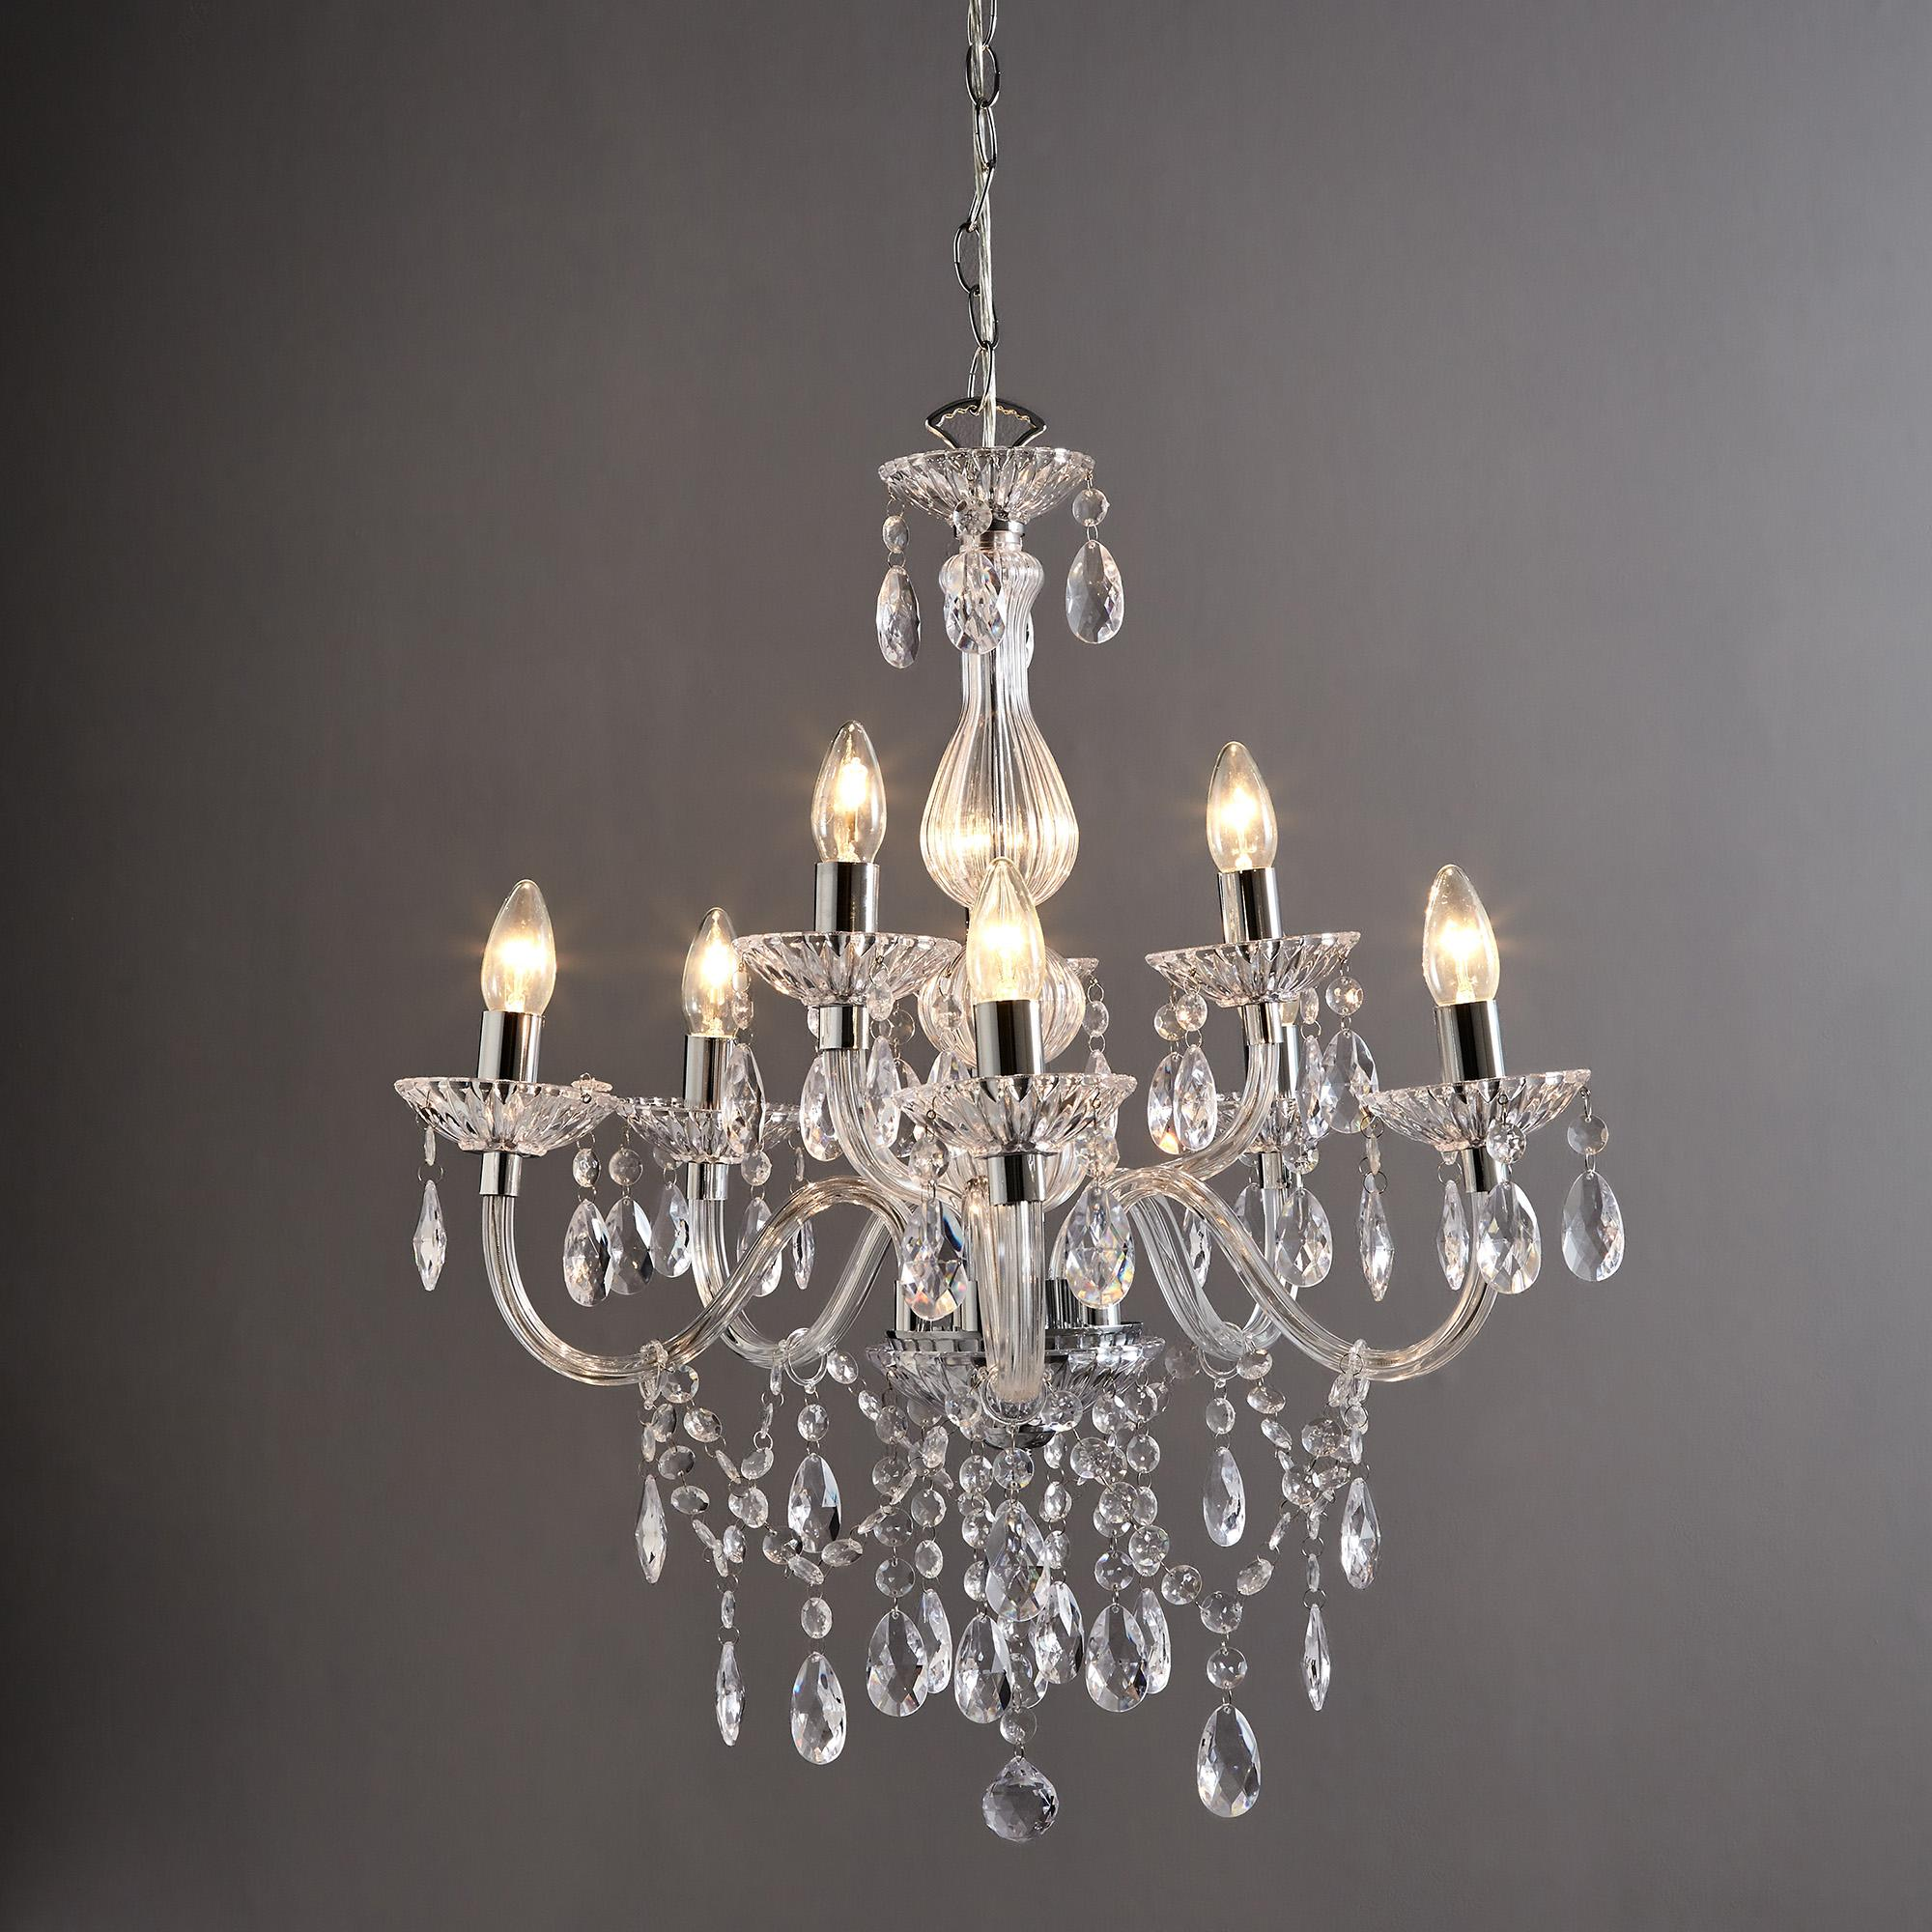 maisie 8 light glass chandelier DGLNMJR